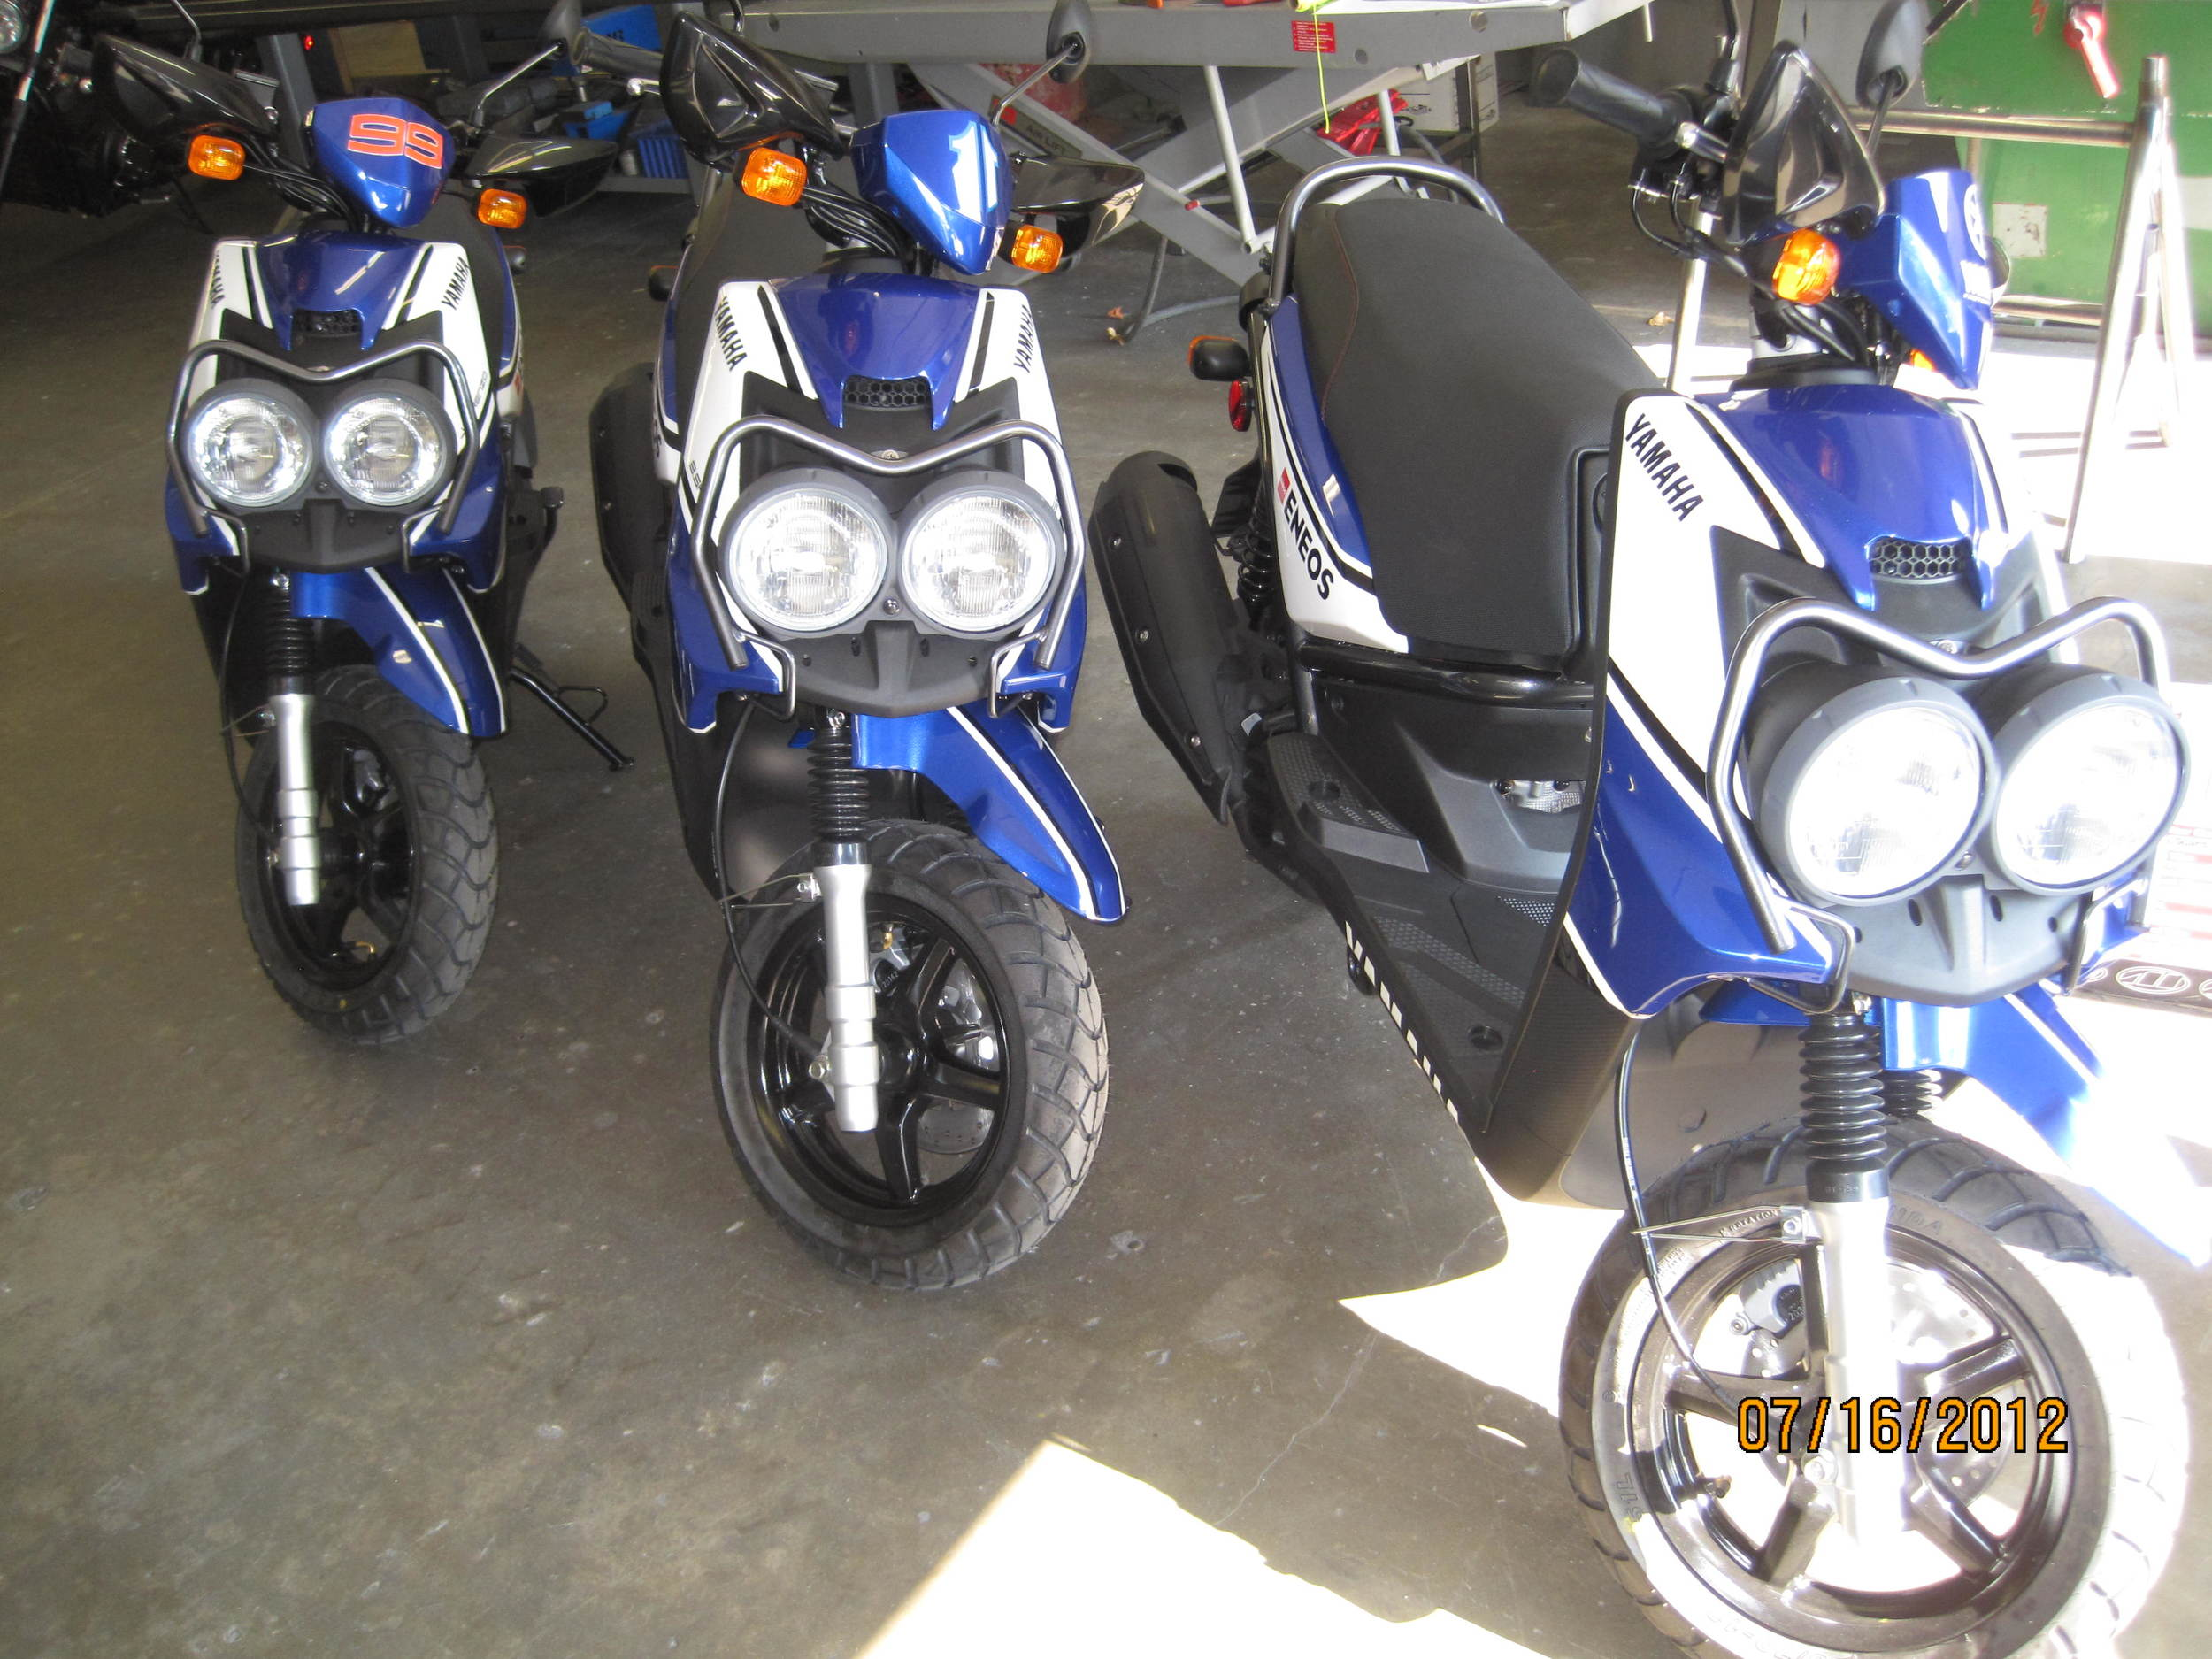 scooters 007.JPG